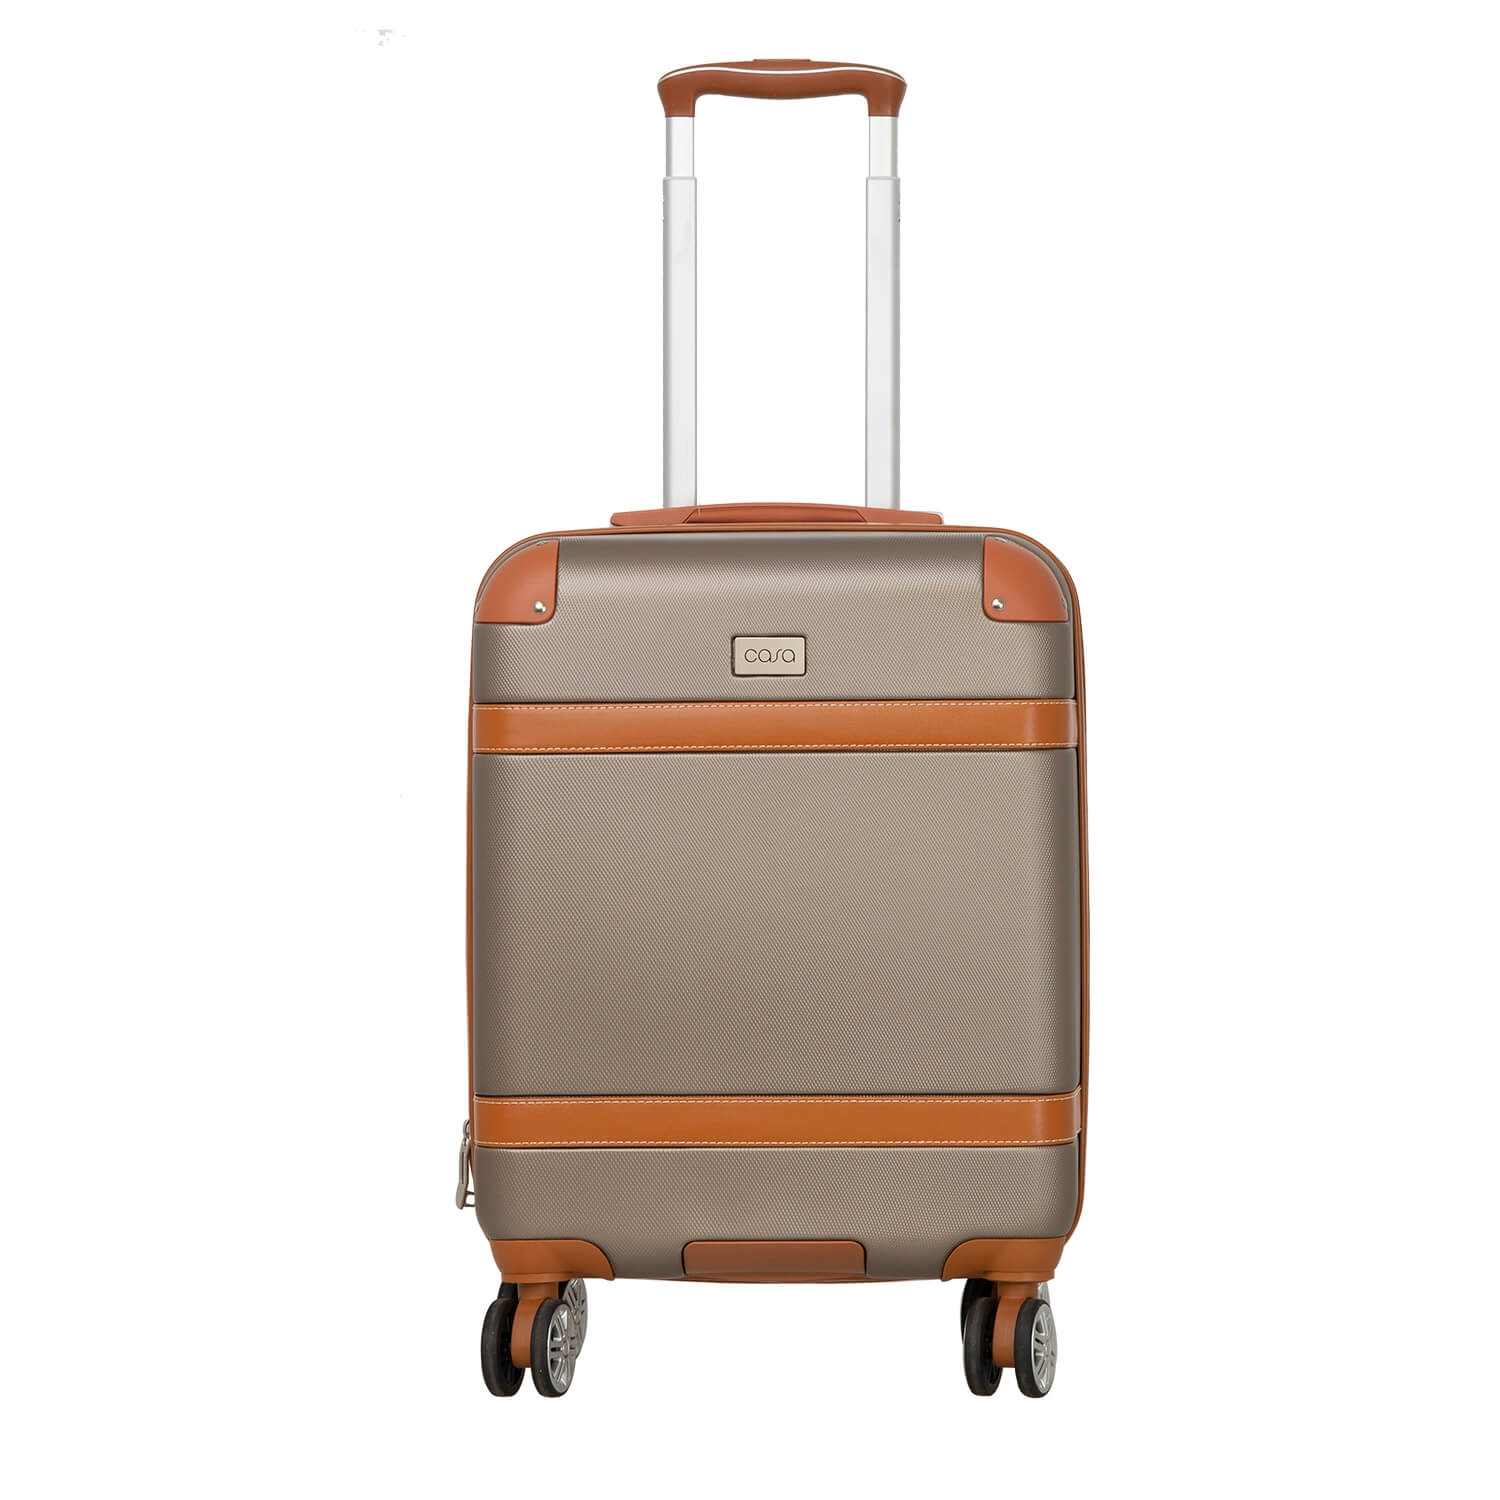 Image of Casa Contrast Banded Hard 34cm x 19cm x 53cm Suitcase, Champagne And Tan